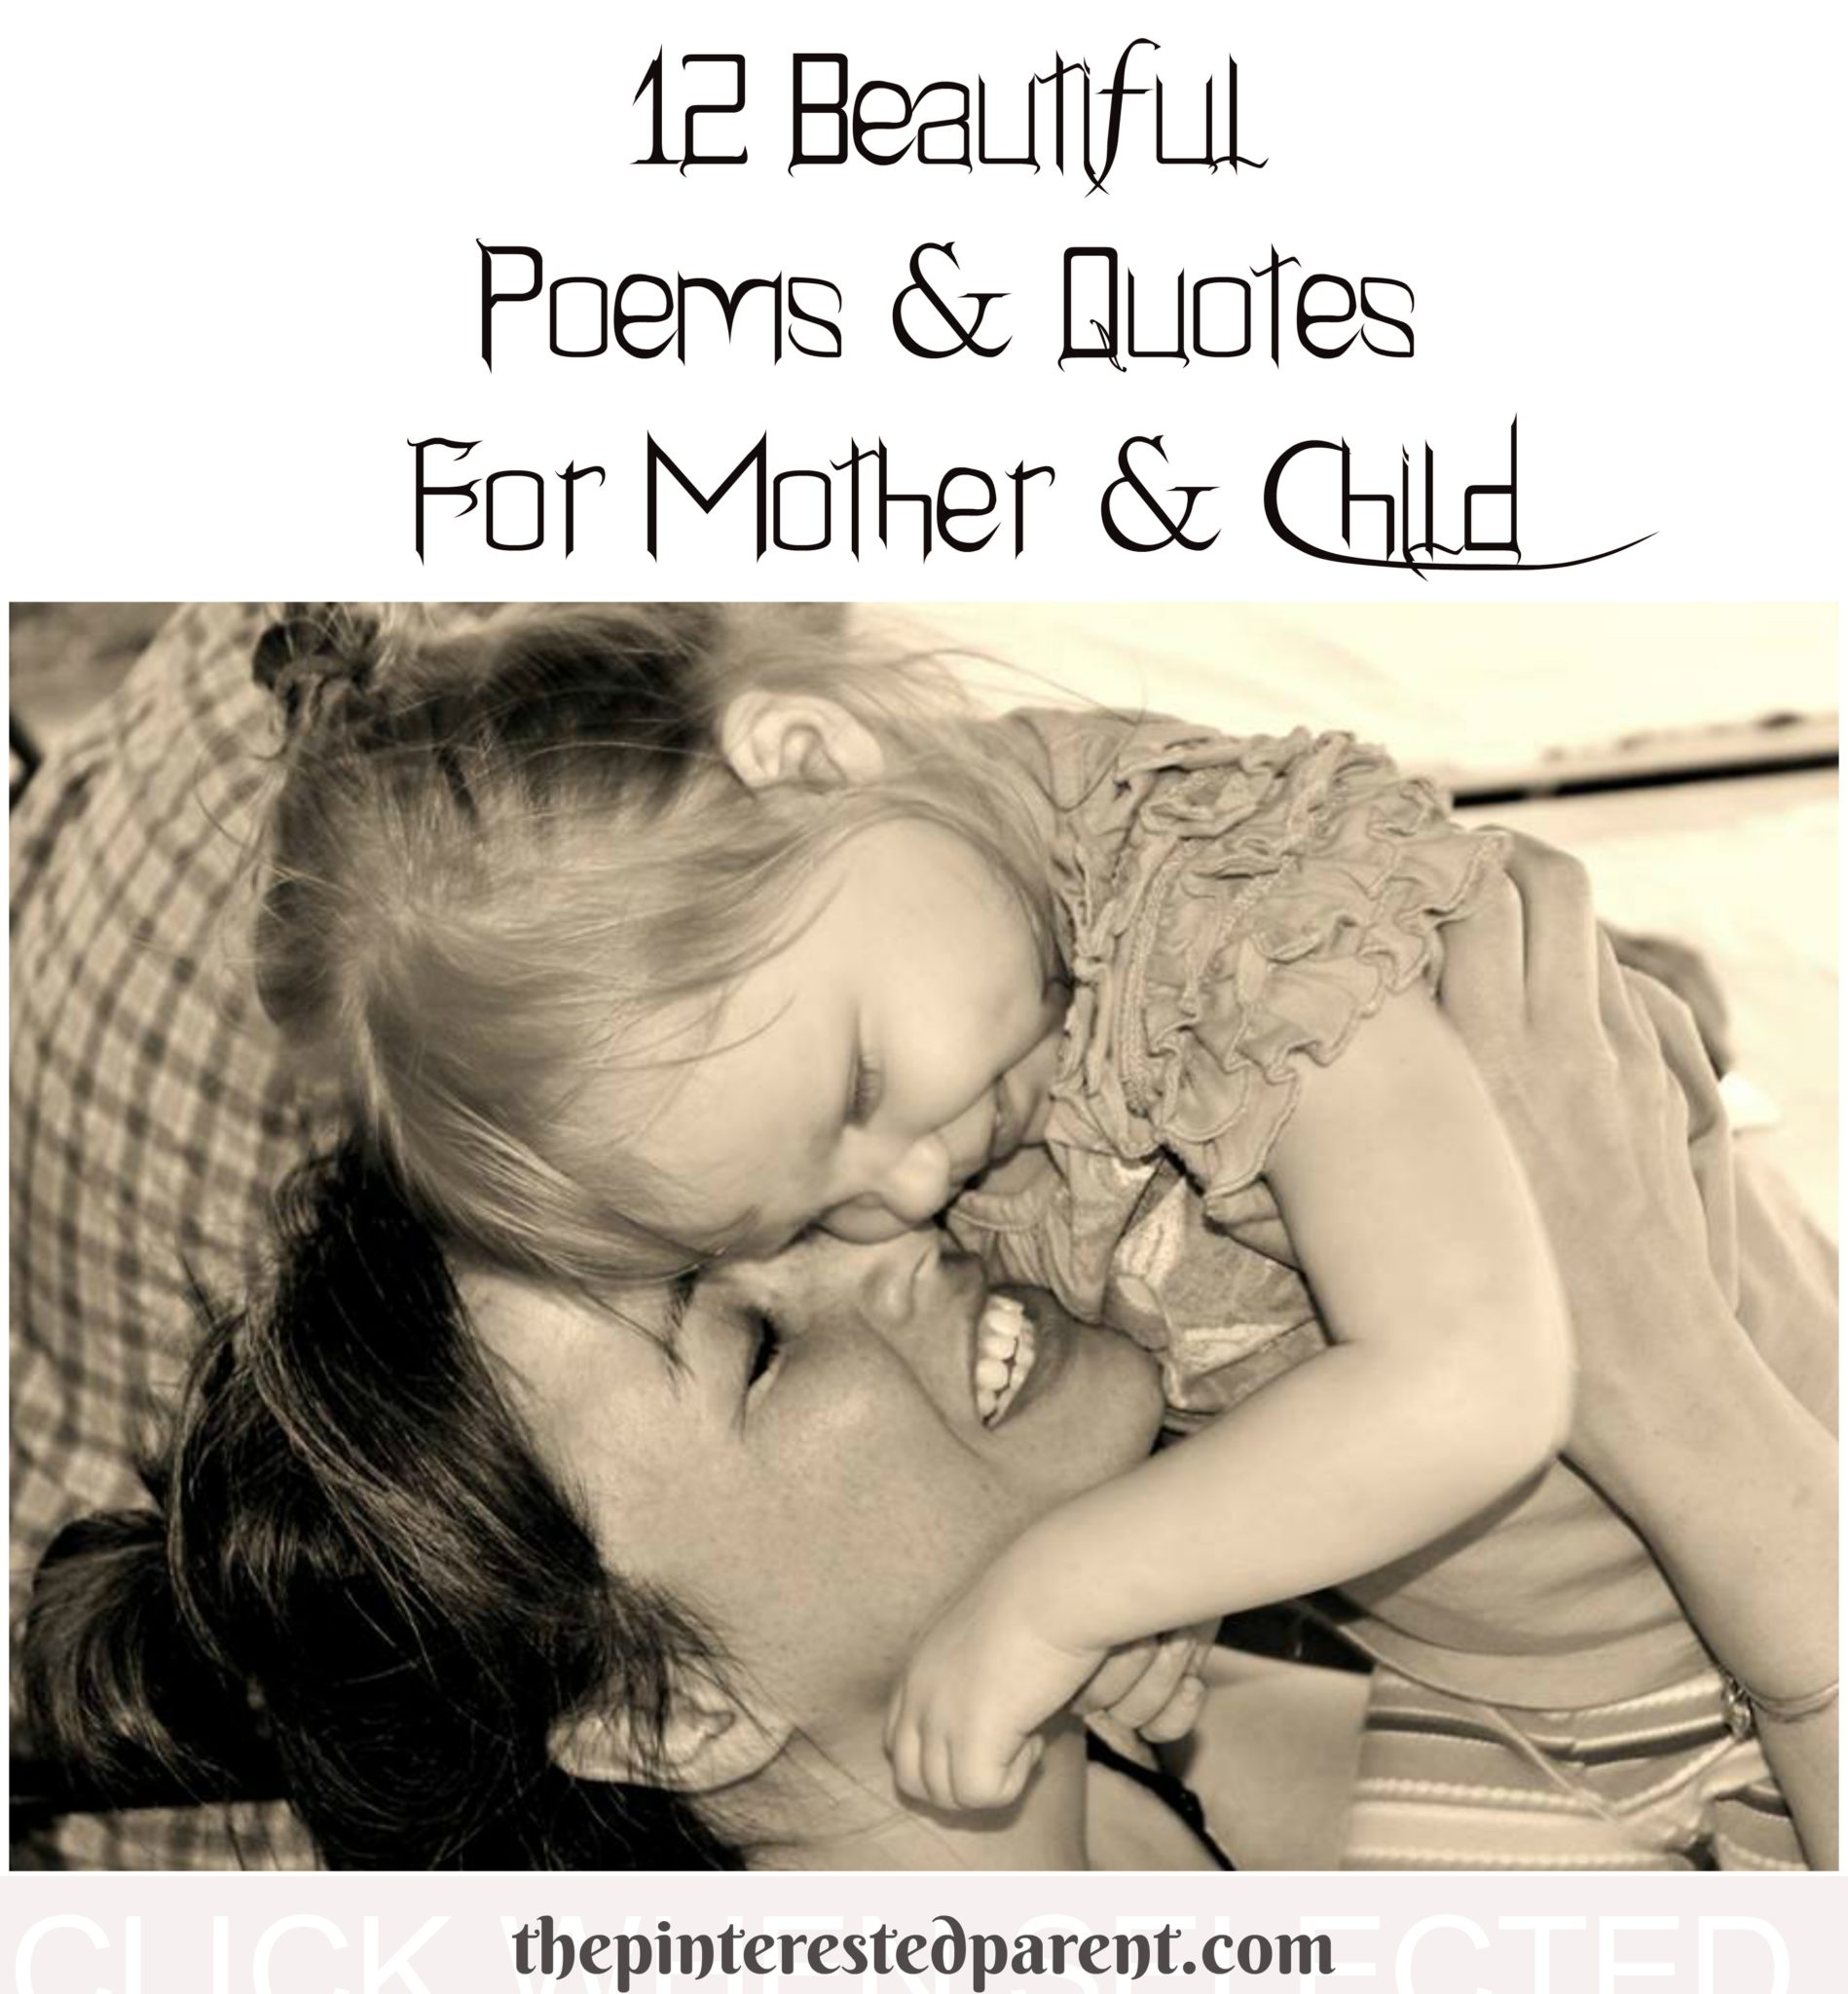 Children Love Quotes Poems & Quotes For Mother & Child  The Pinterested Parent